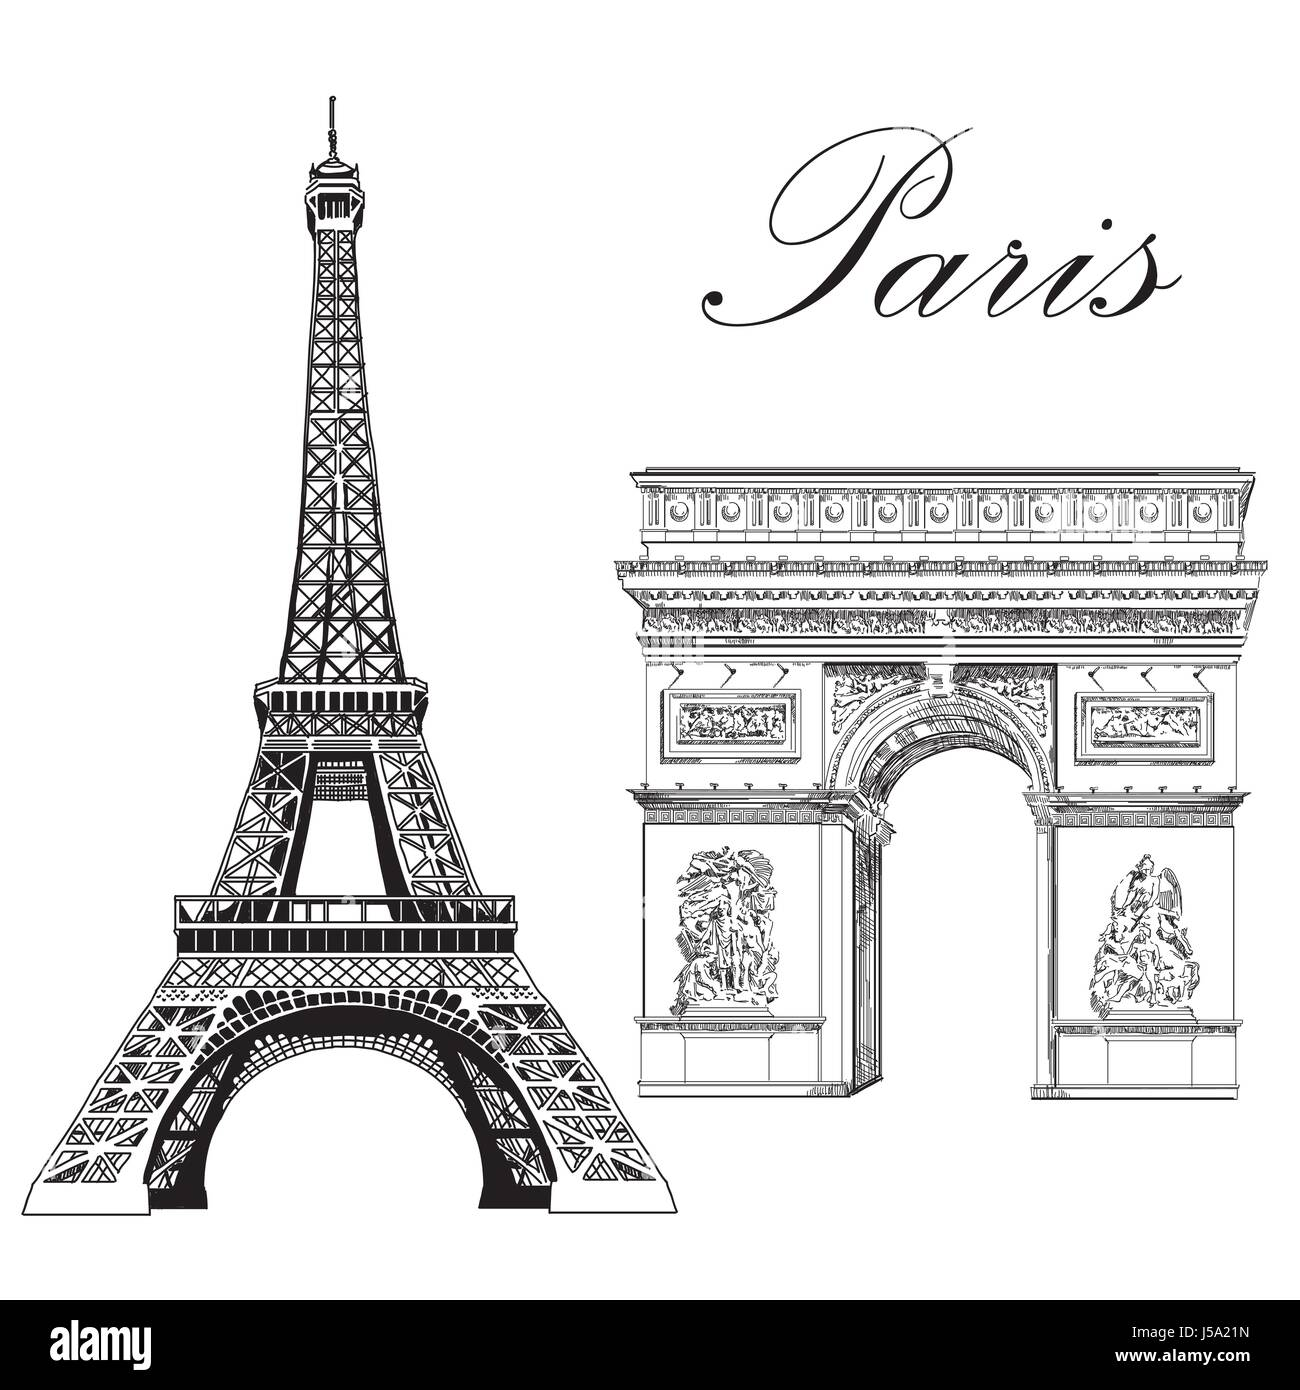 Eiffel tower and triumphal arch landmarks of paris france vector eiffel tower and triumphal arch landmarks of paris france vector isolated hand drawing illustration in black color on white background altavistaventures Choice Image